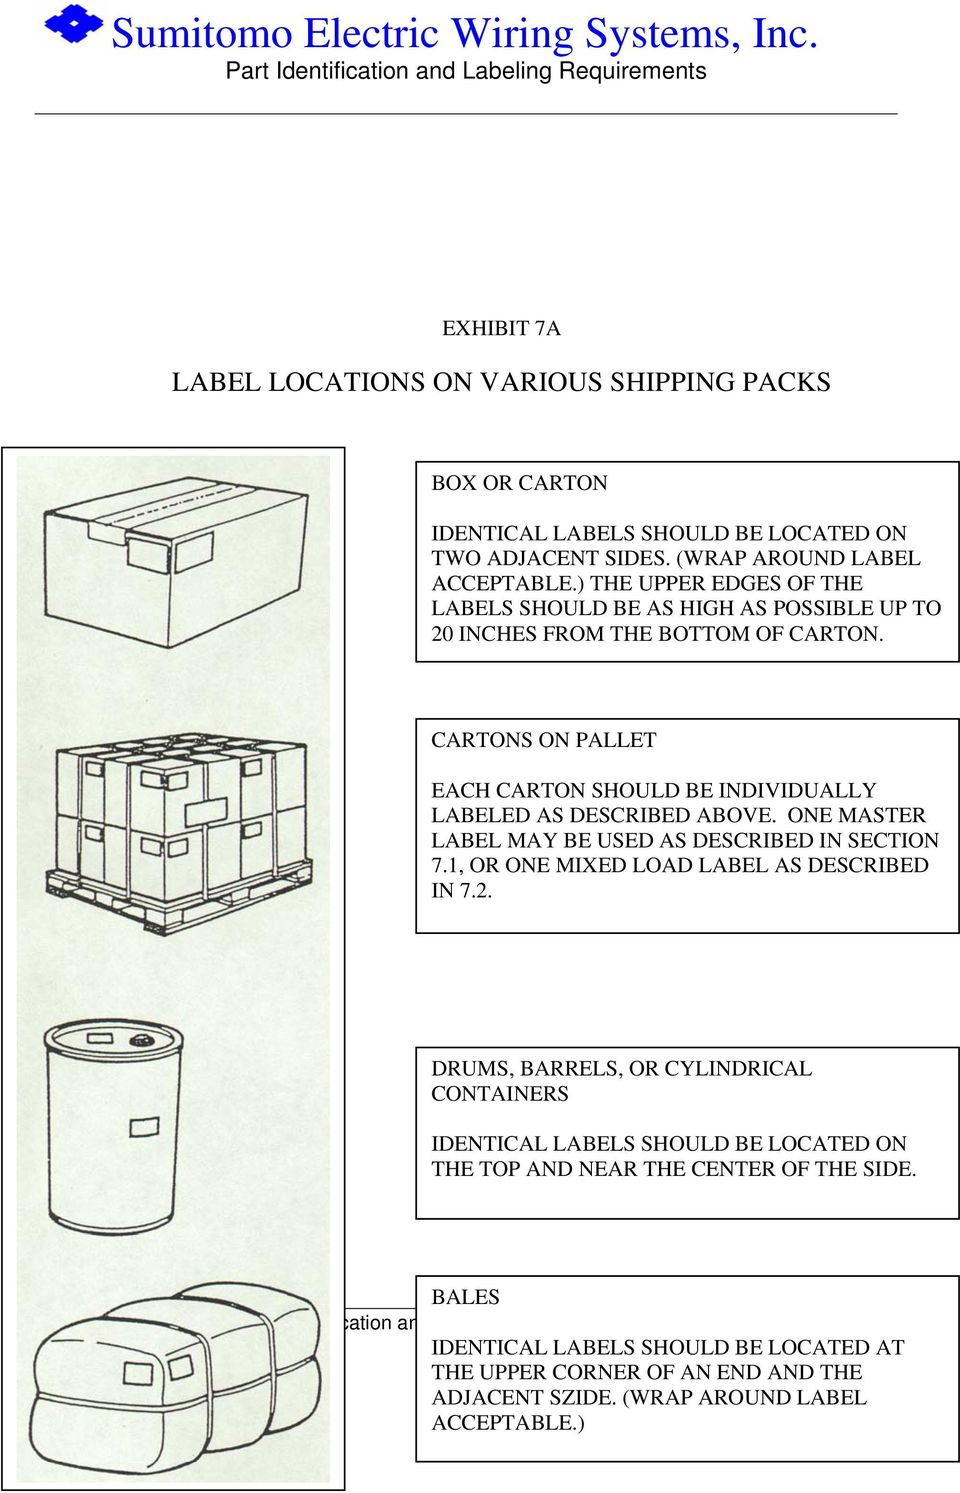 CARTONS ON PALLET EACH CARTON SHOULD BE INDIVIDUALLY LABELED AS DESCRIBED ABOVE. ONE MASTER LABEL MAY BE USED AS DESCRIBED IN SECTION 7.